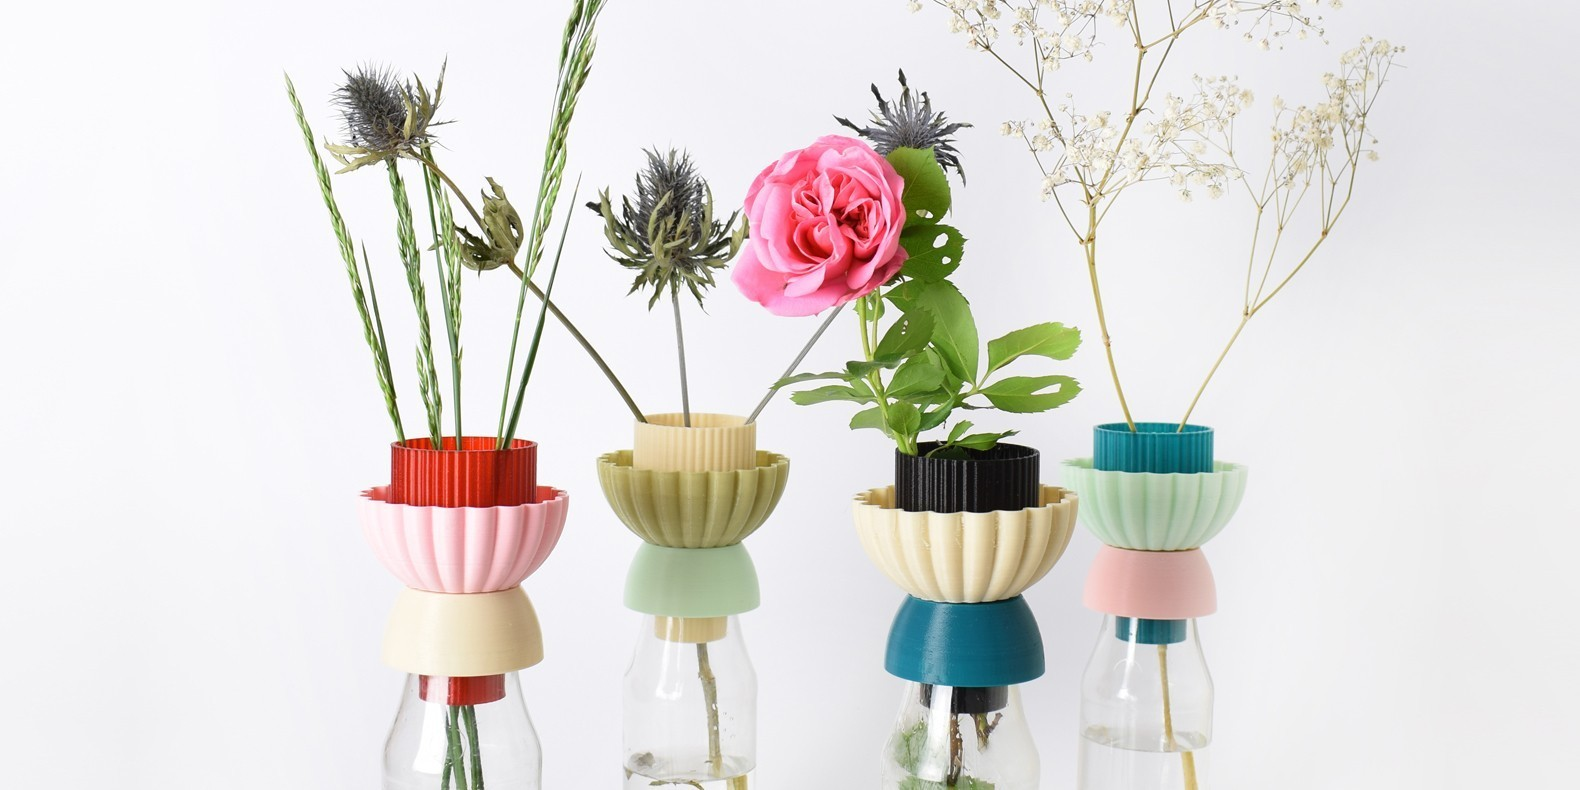 stl file vases from recycled bottles